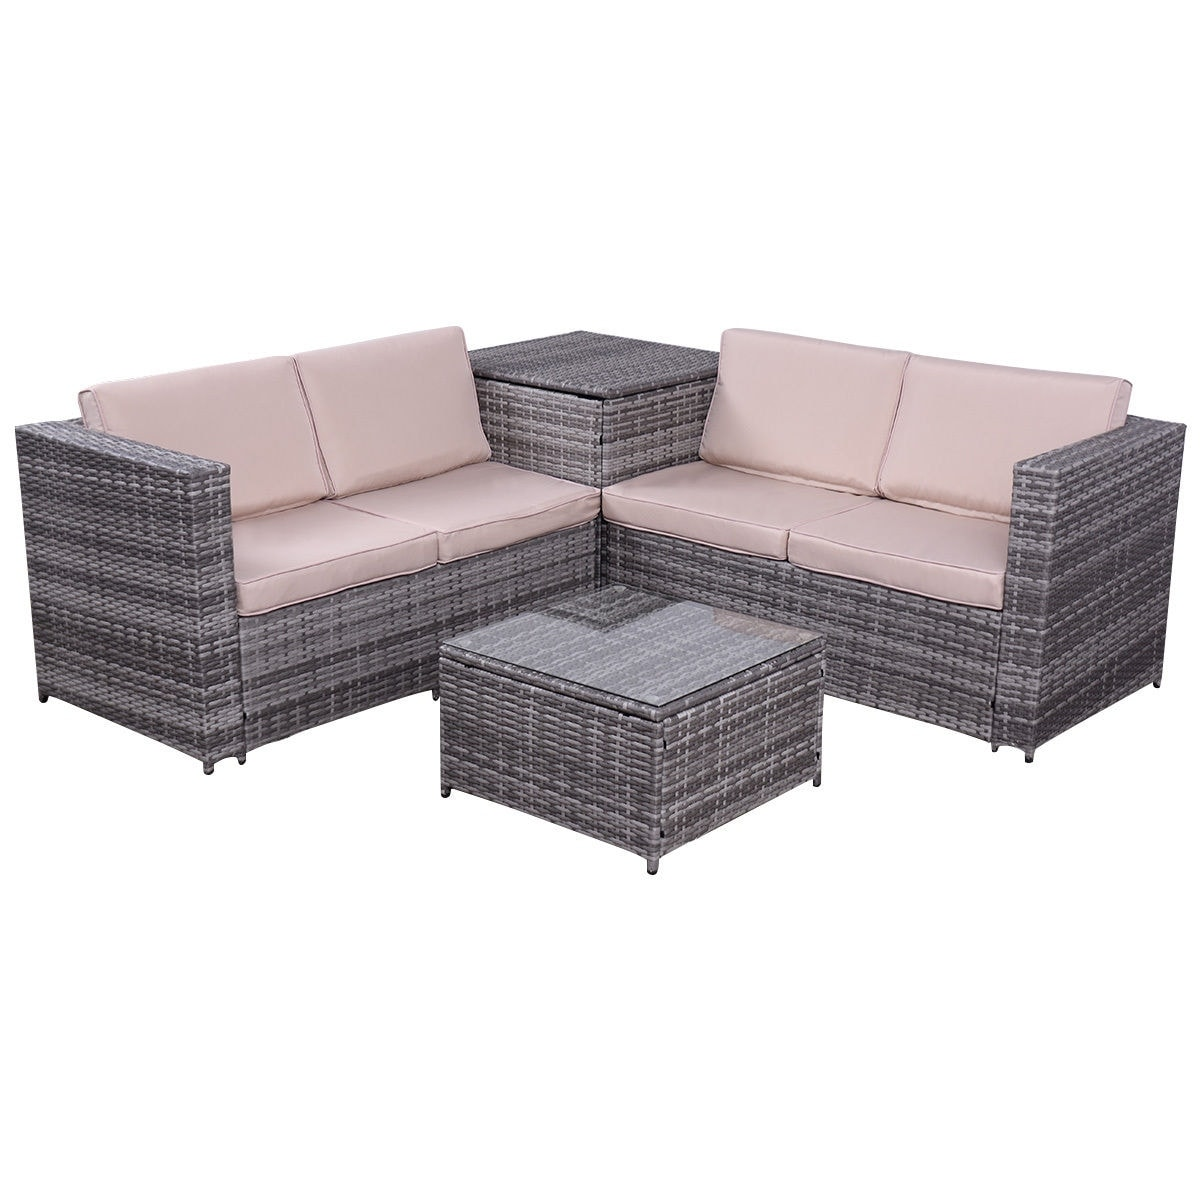 Costway 4pcs Patio Rattan Wicker Furniture Set Sofa Loveseat Cushioned W Storage Box As Pic Free Shipping Today 16339809